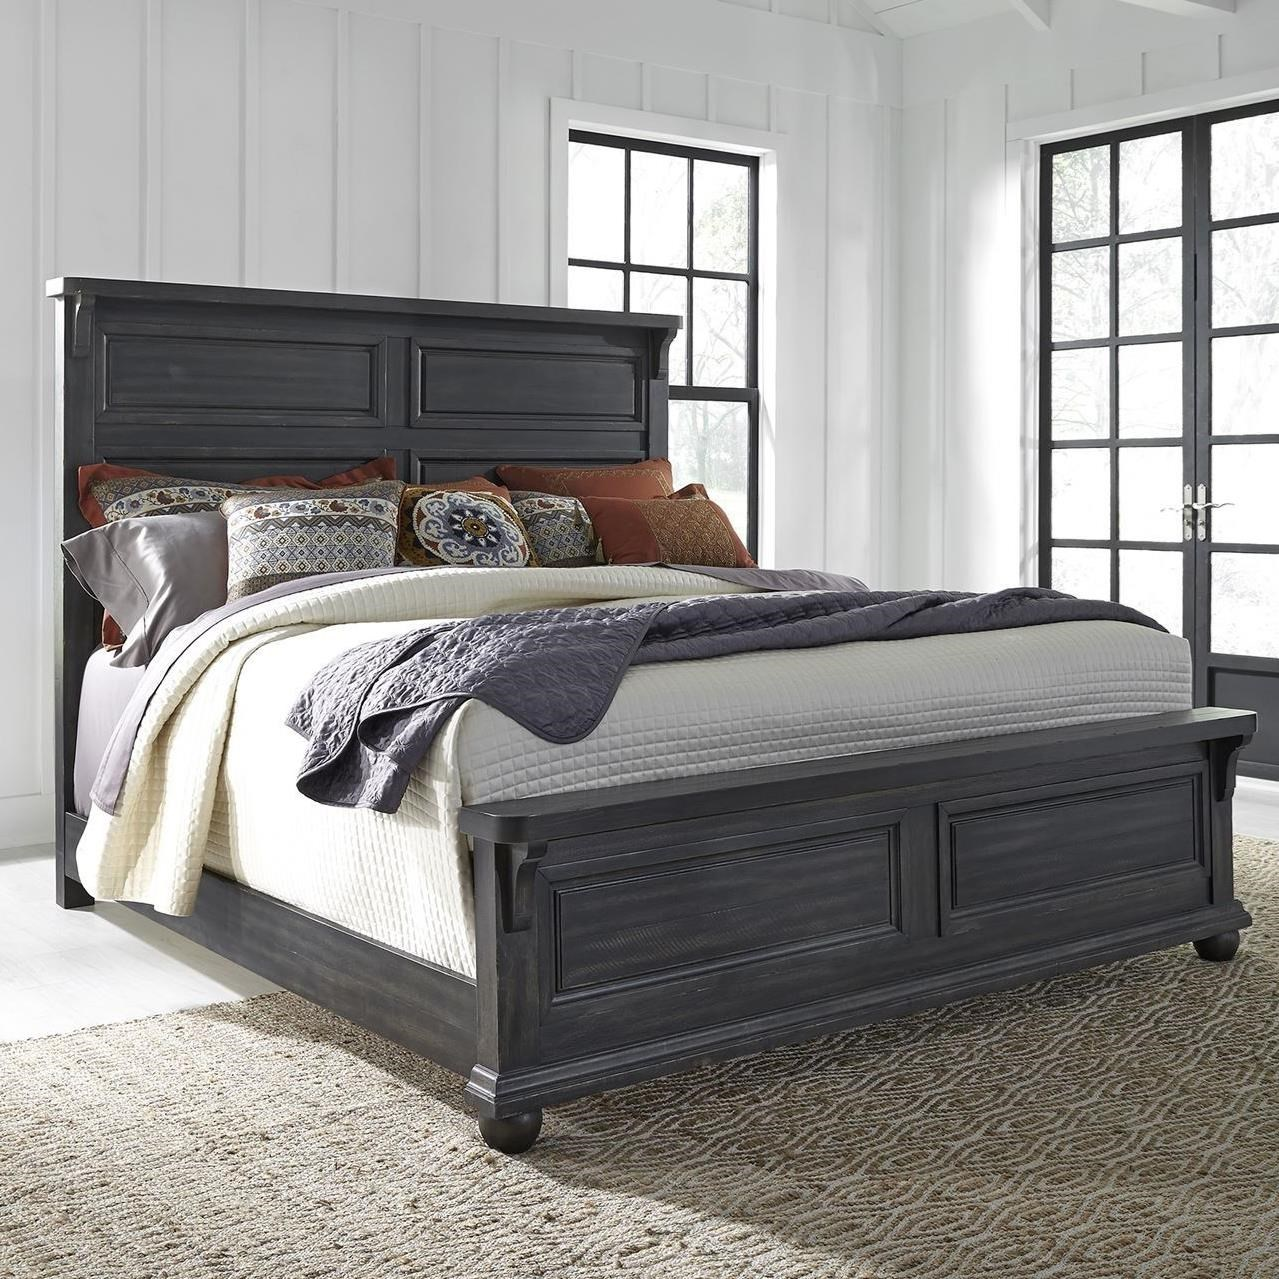 Harvest Home Queen Panel Bed by Libby at Walker's Furniture